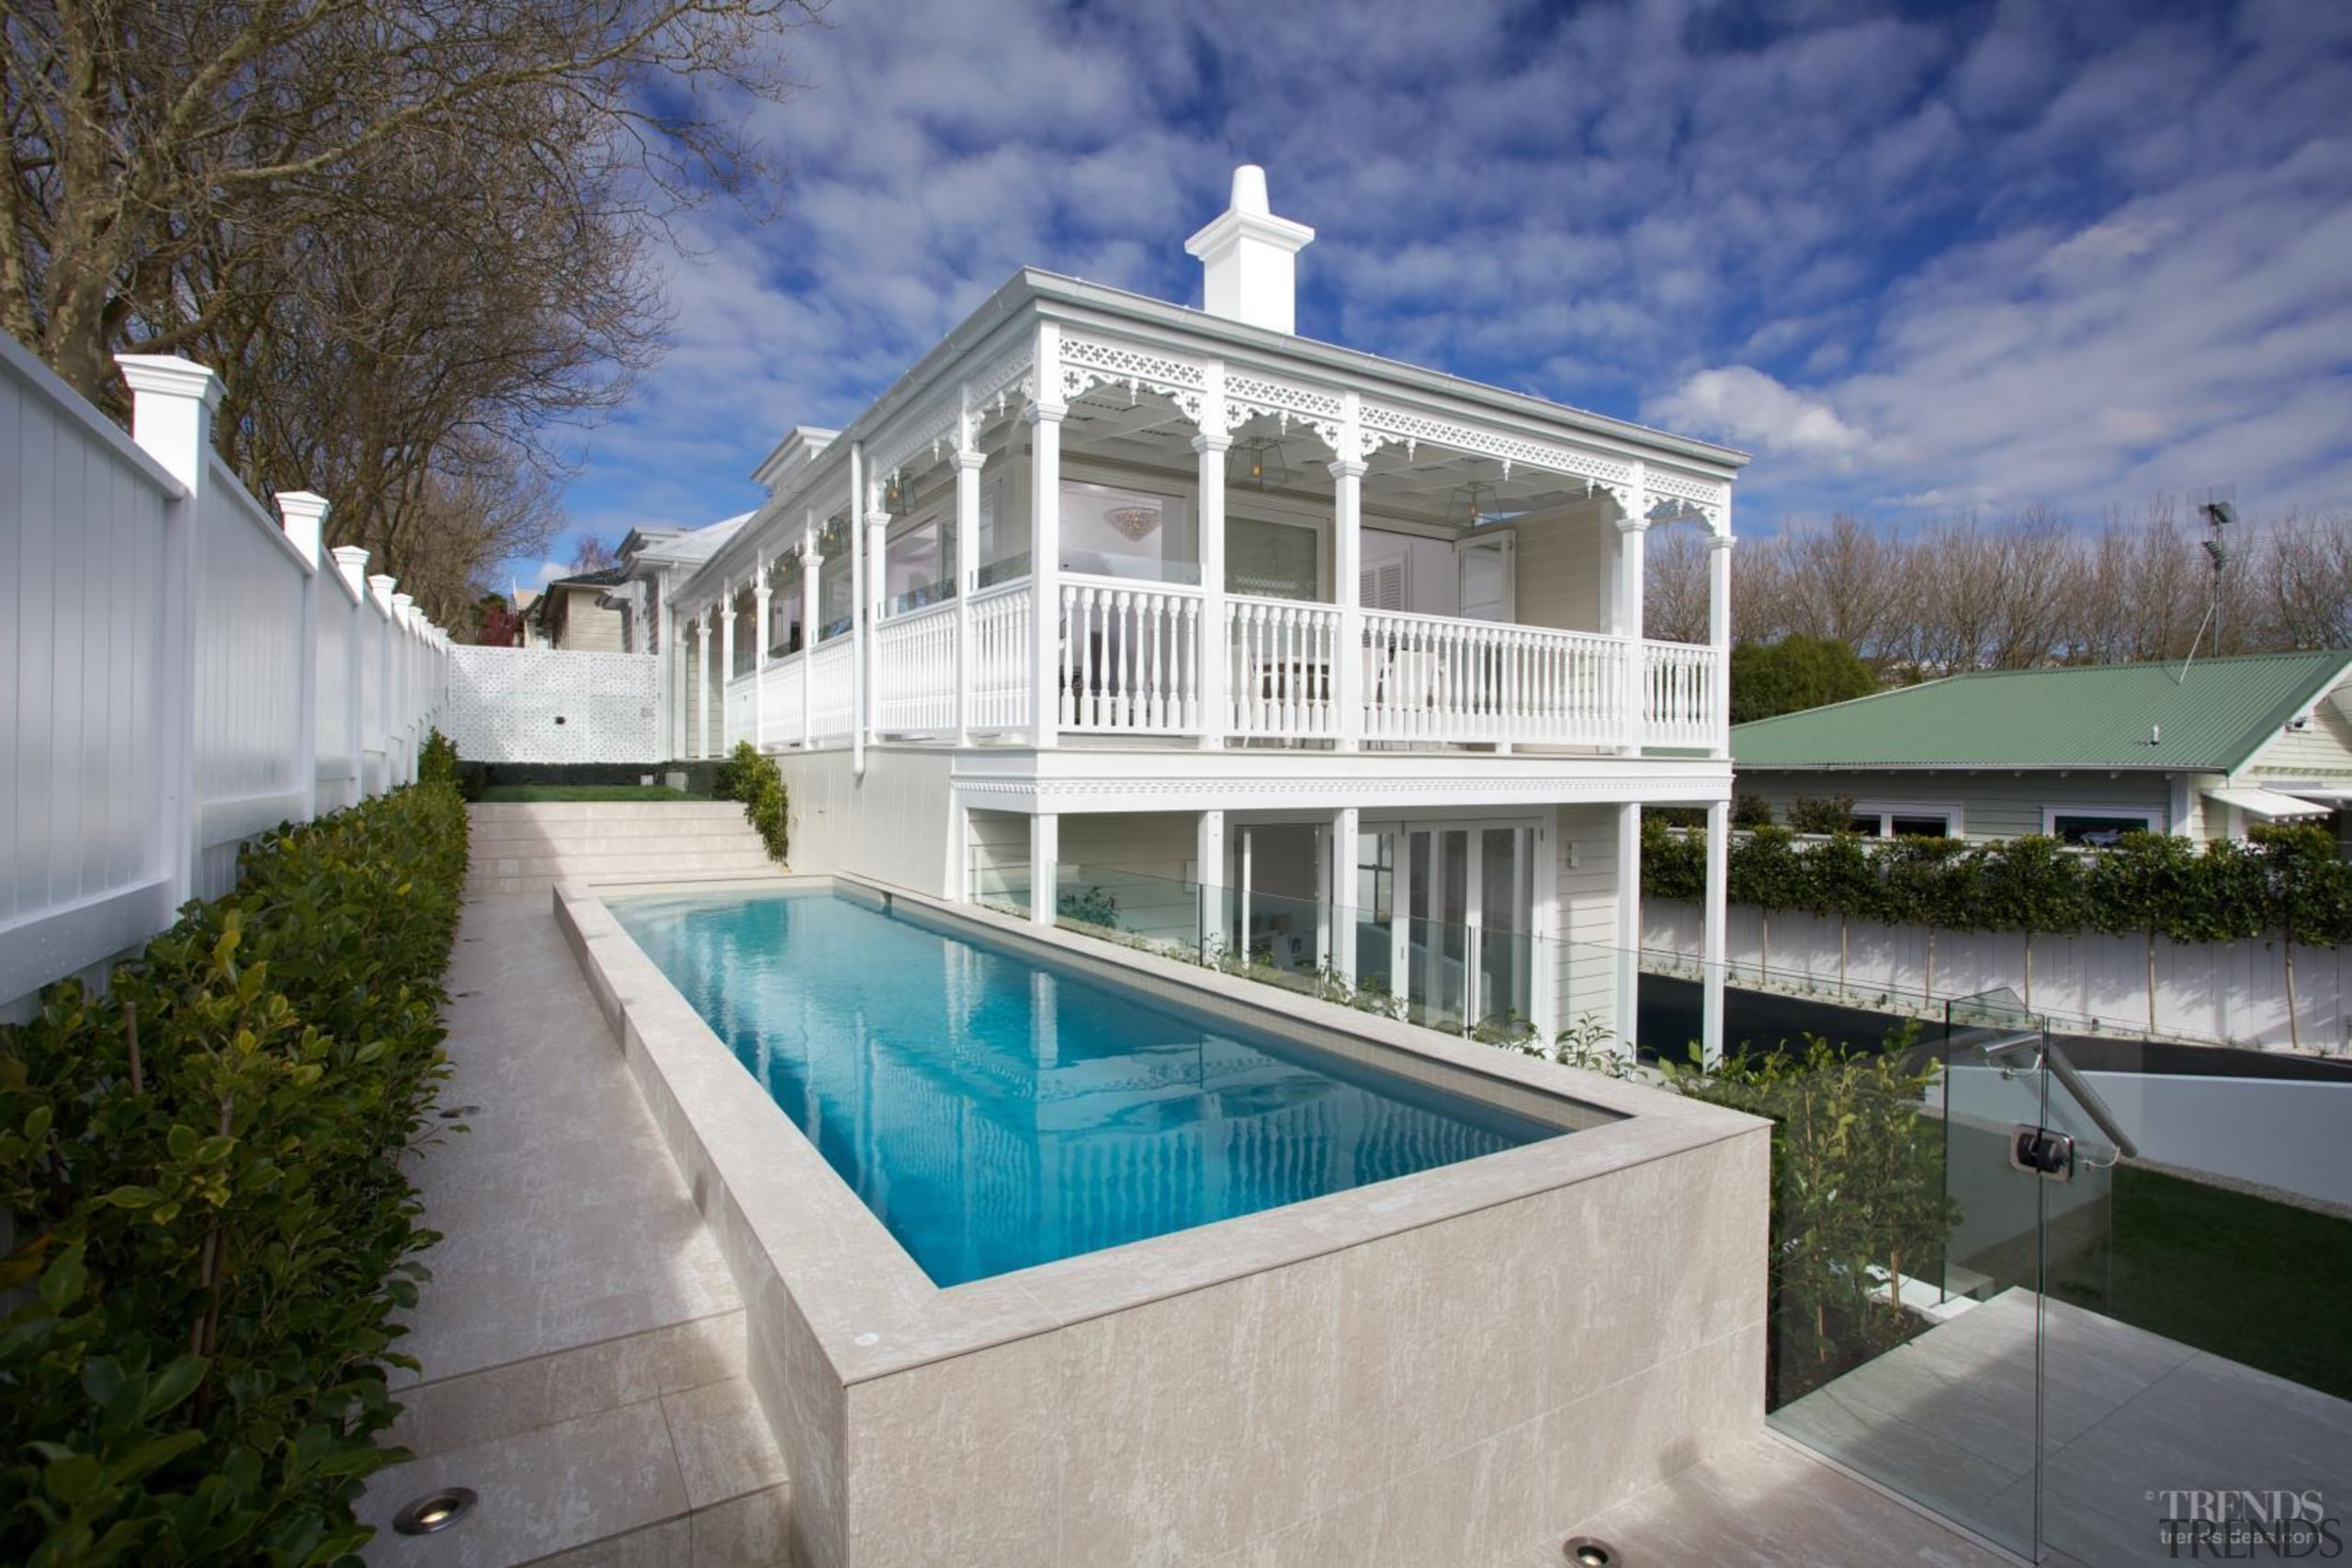 Grand affair – classic weatherboards, filigree detailing and apartment, architecture, estate, home, house, property, real estate, swimming pool, villa, water, gray